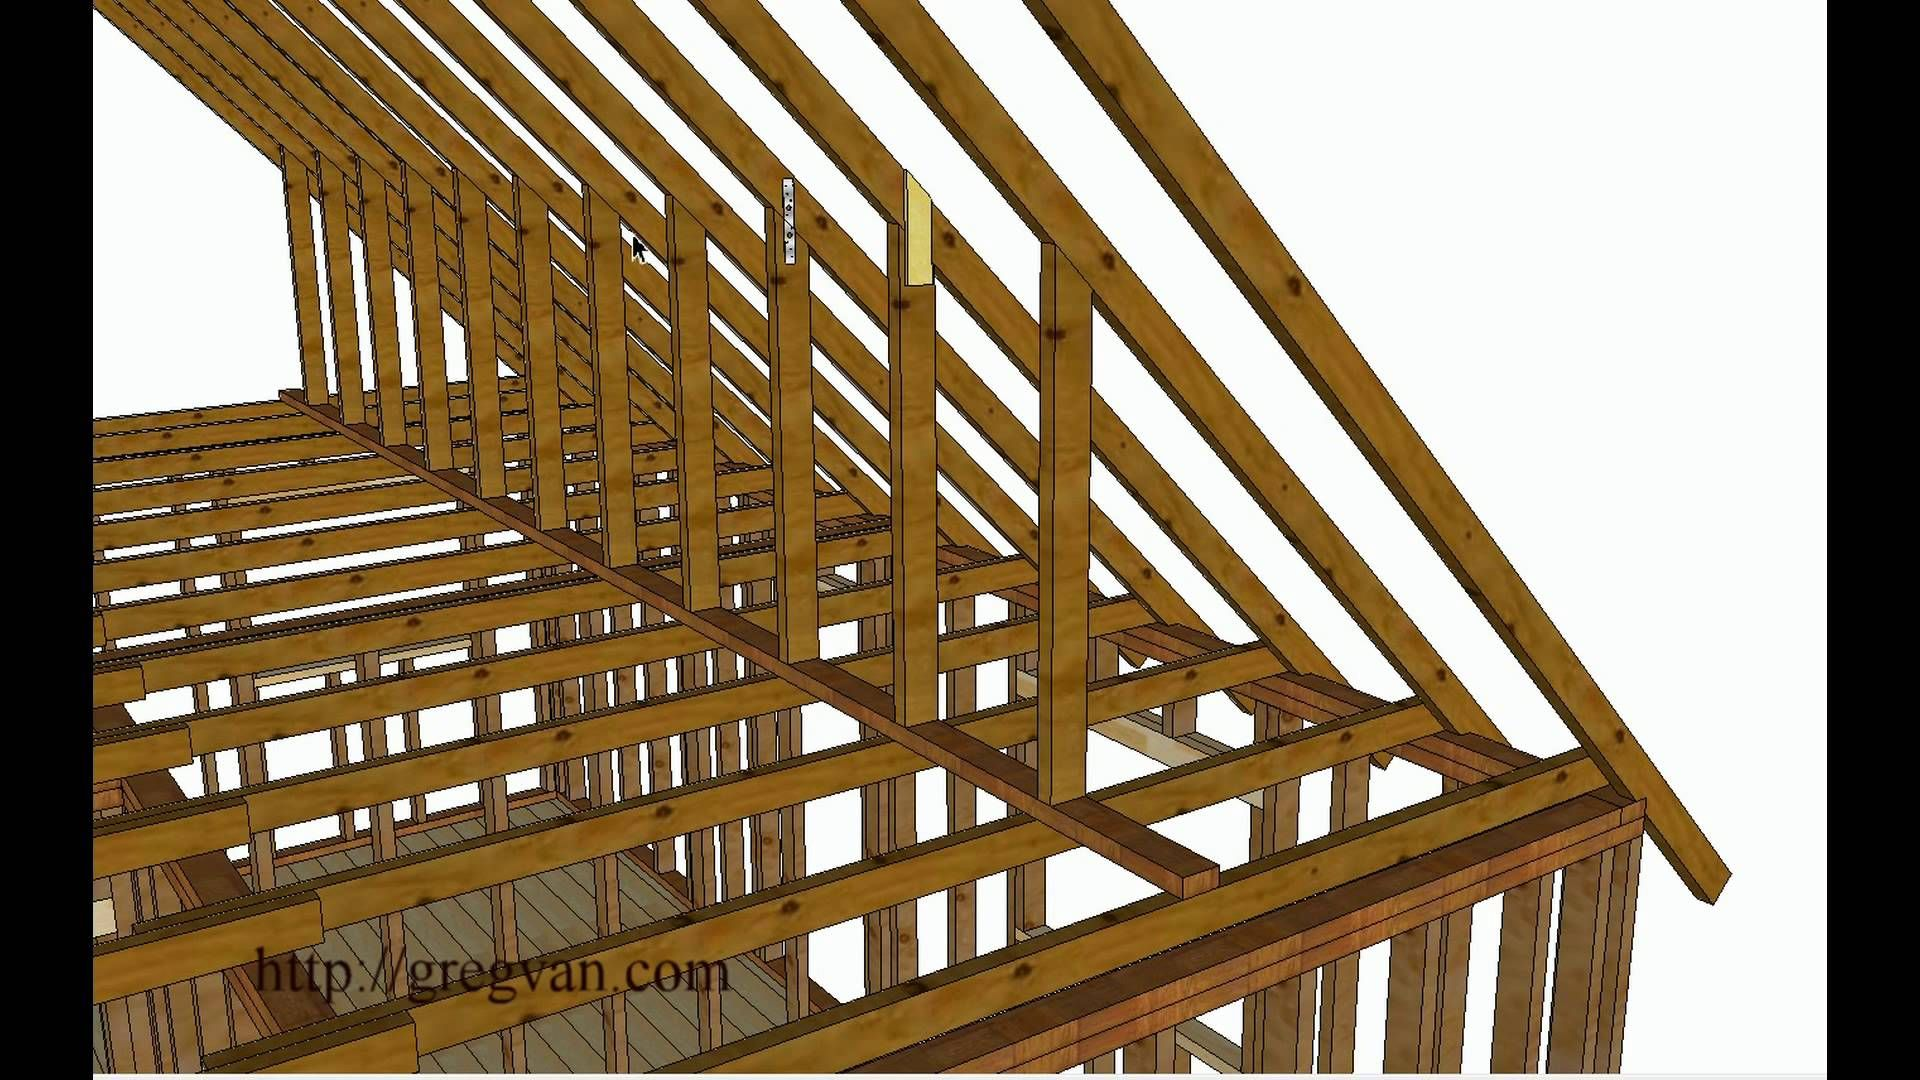 Using Walls Instead Of Purlin Braces To Support Roof Rafters Attic Remodeling Tips Garage Office Design Ideas Roof Design Building Roof Loft Conversion Roof